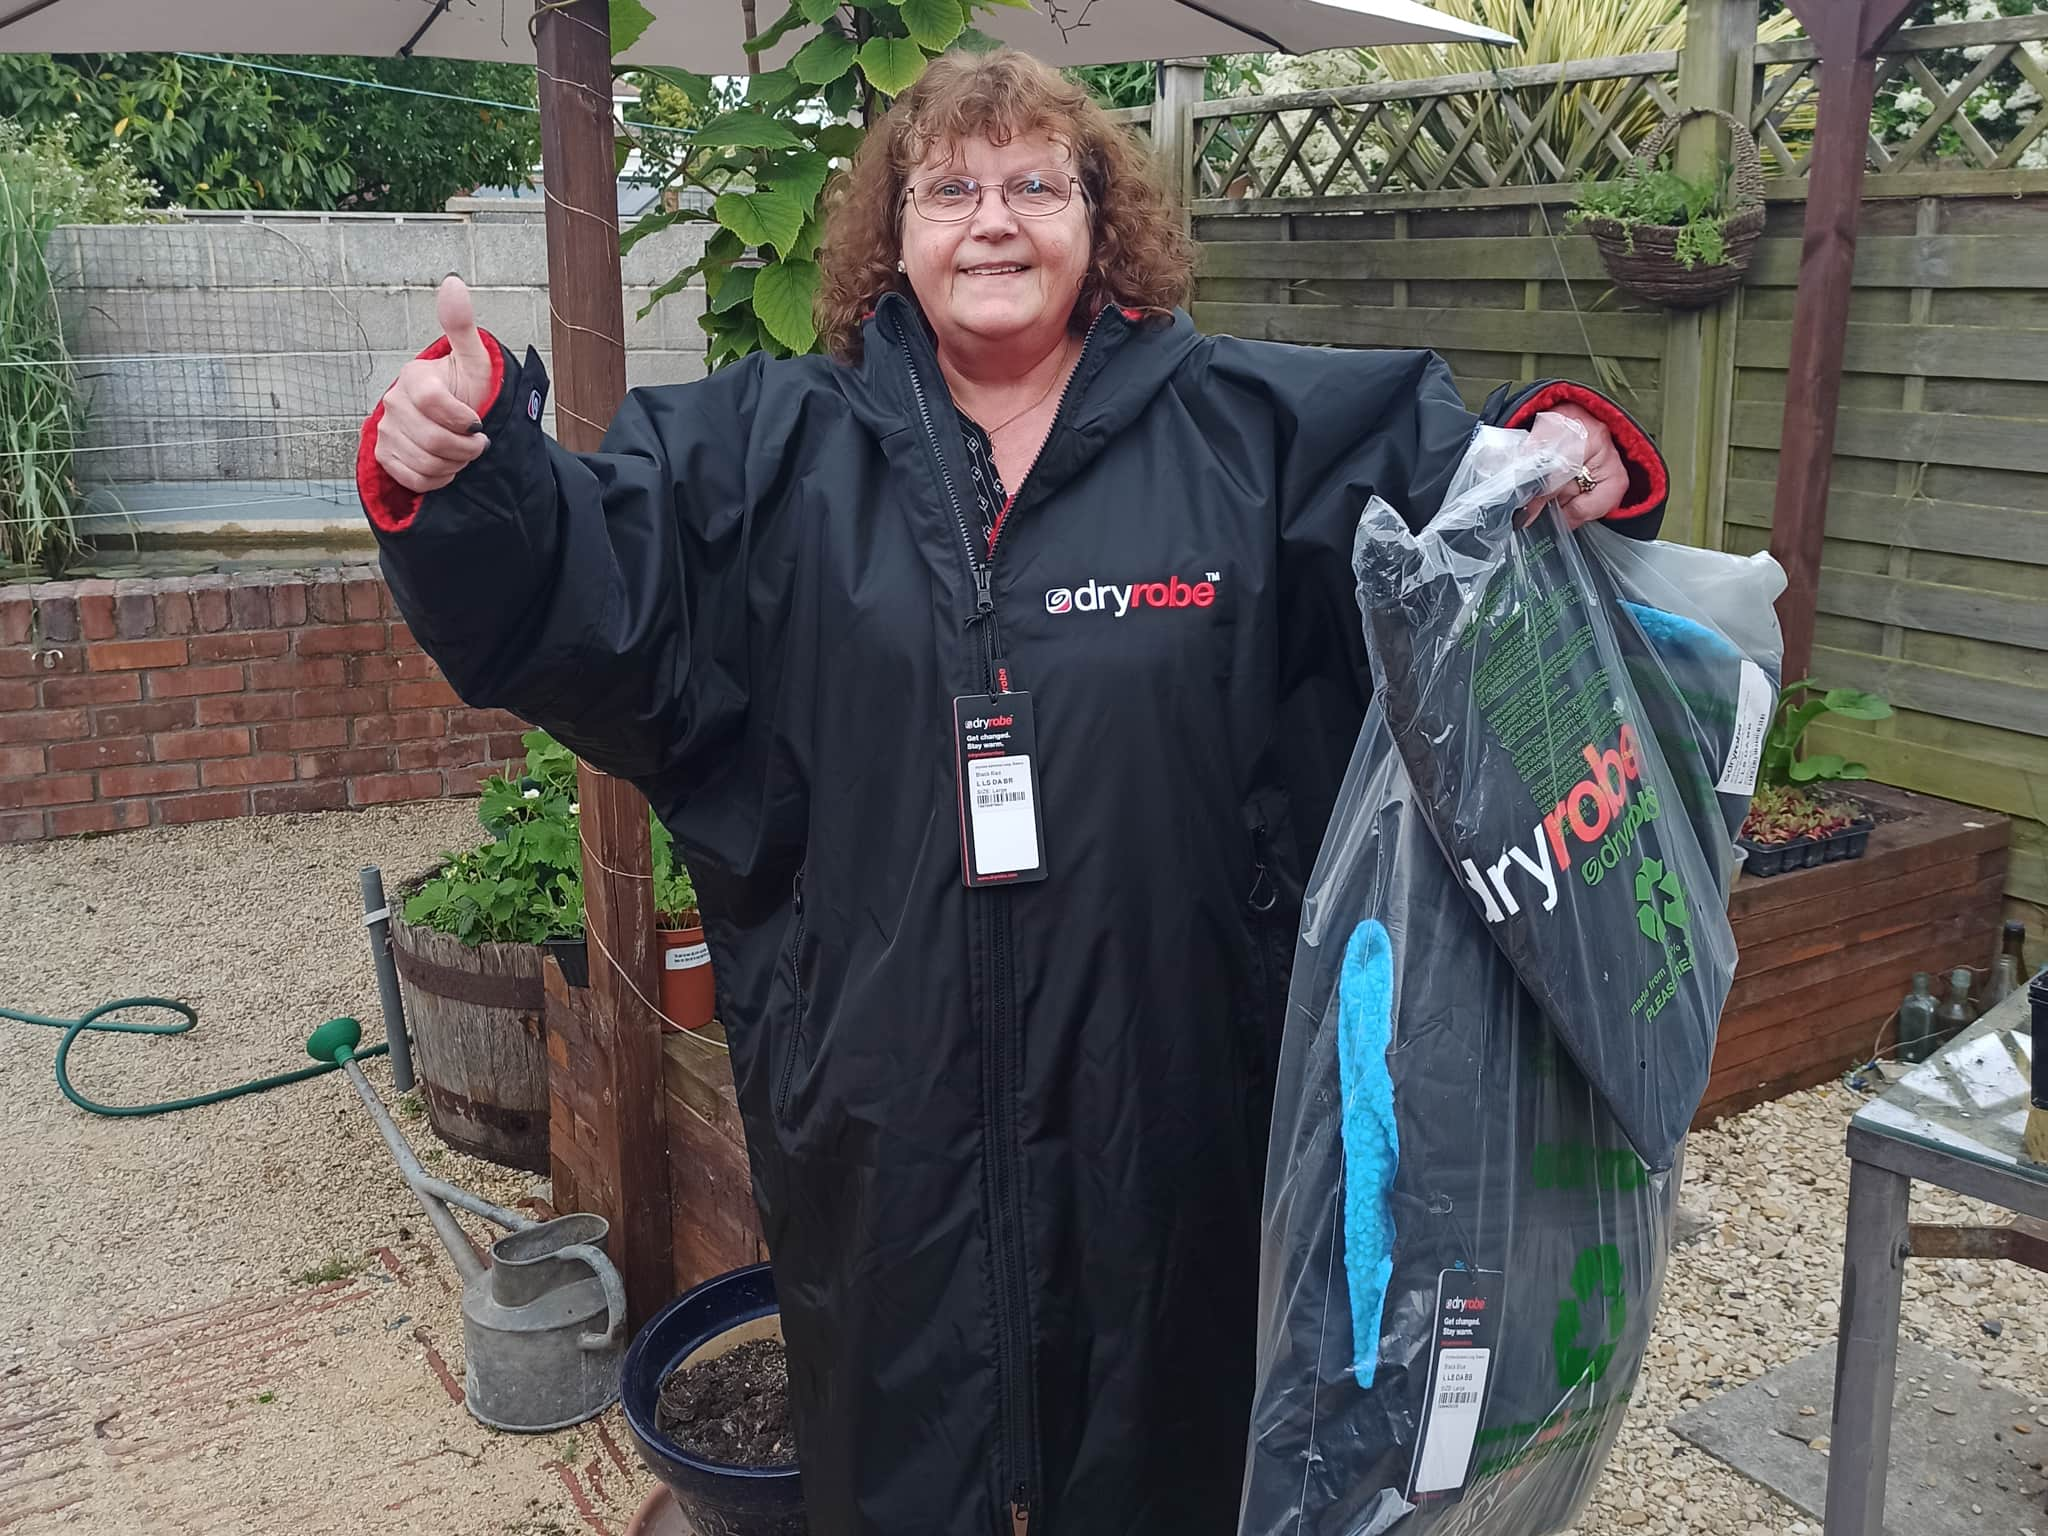 Winner Shirley Collins of a Double dryrobe Advance Long Sleeve and Bags - Blue - 2x Dryrobe longsleeves with 2x Bags - 7th June